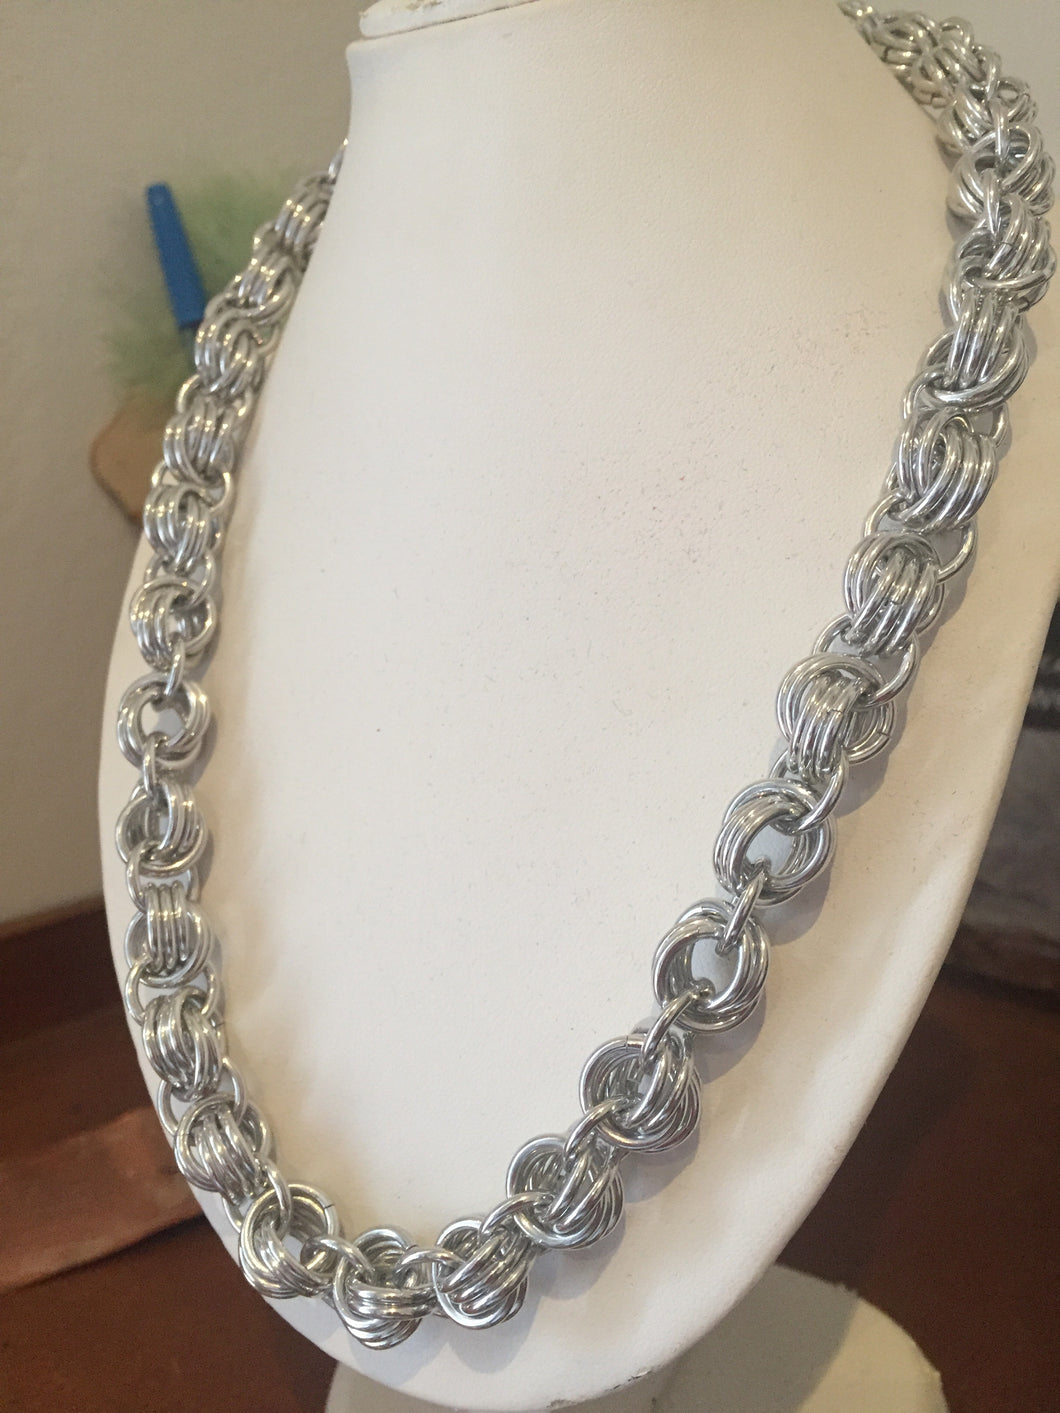 Aluminium knot necklace